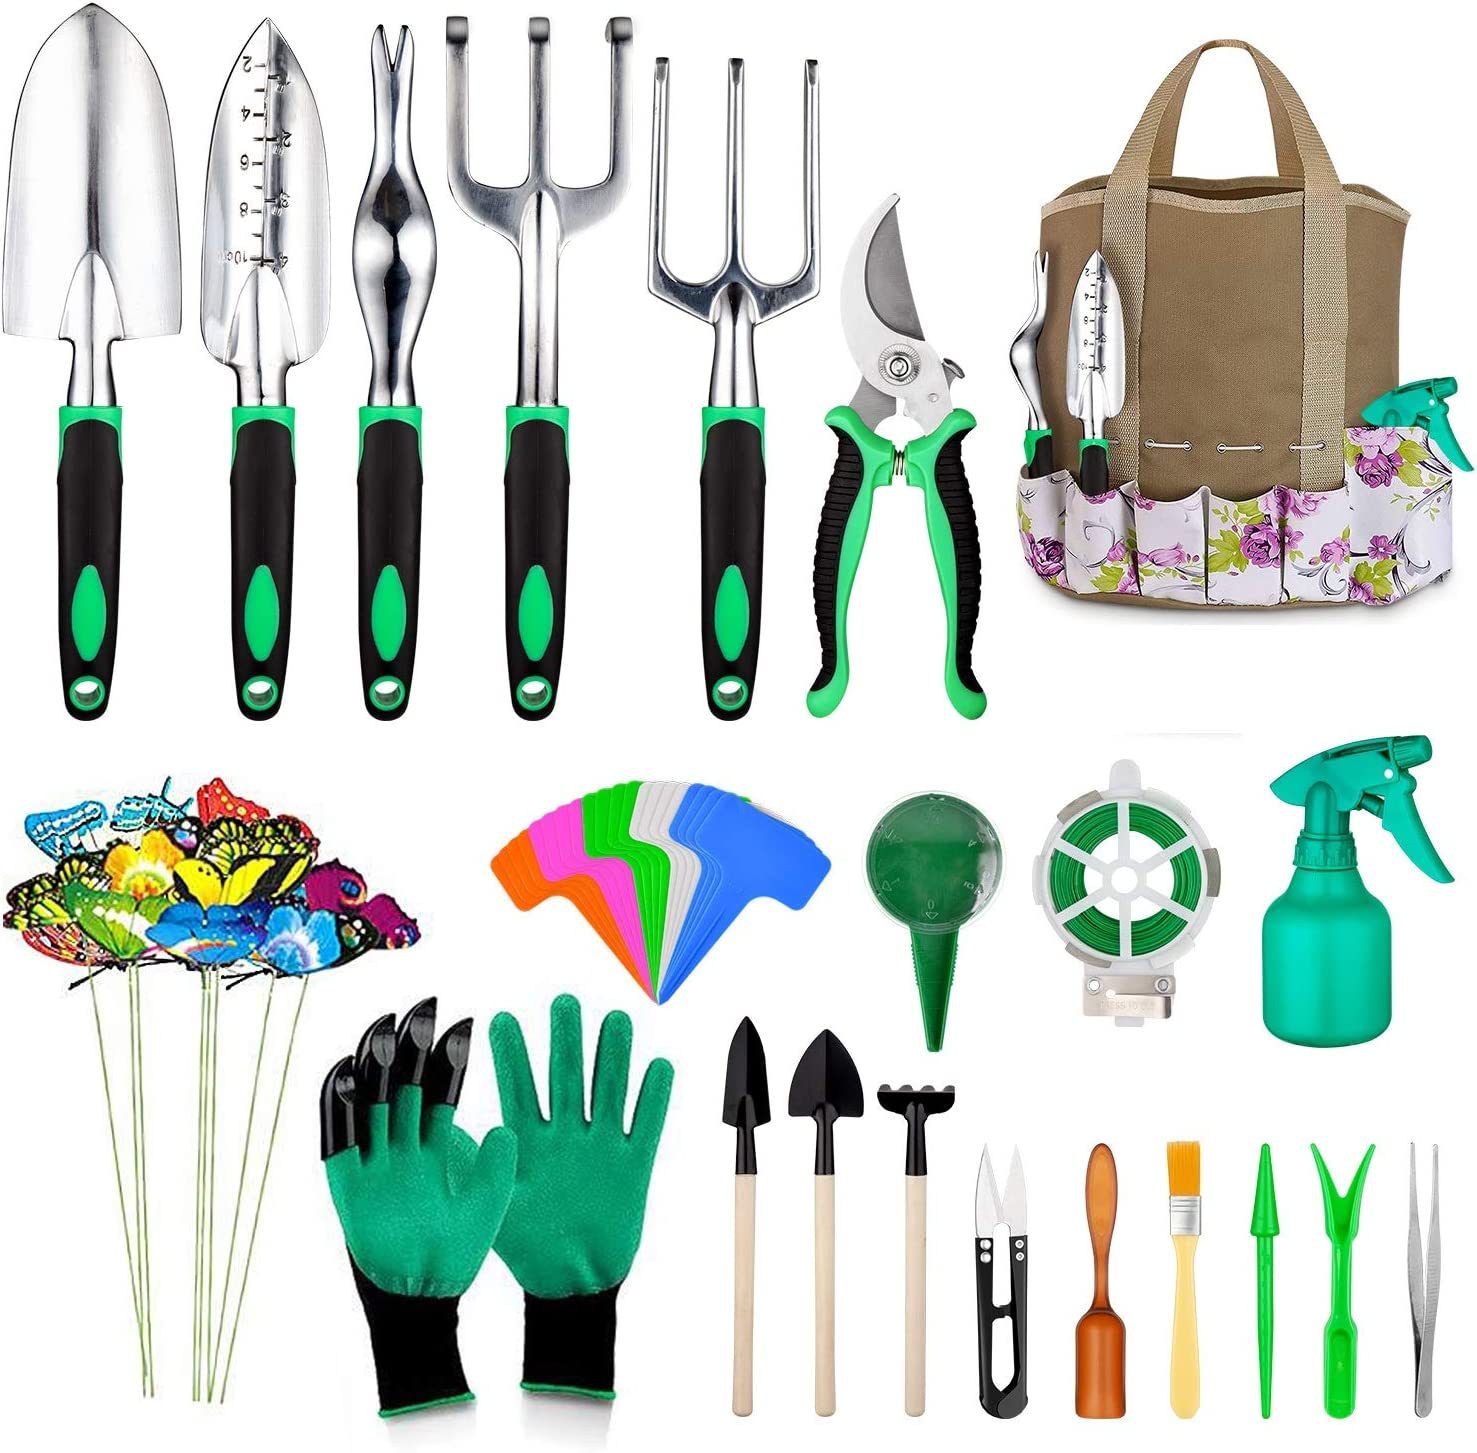 49 Pcs Garden Tools Set